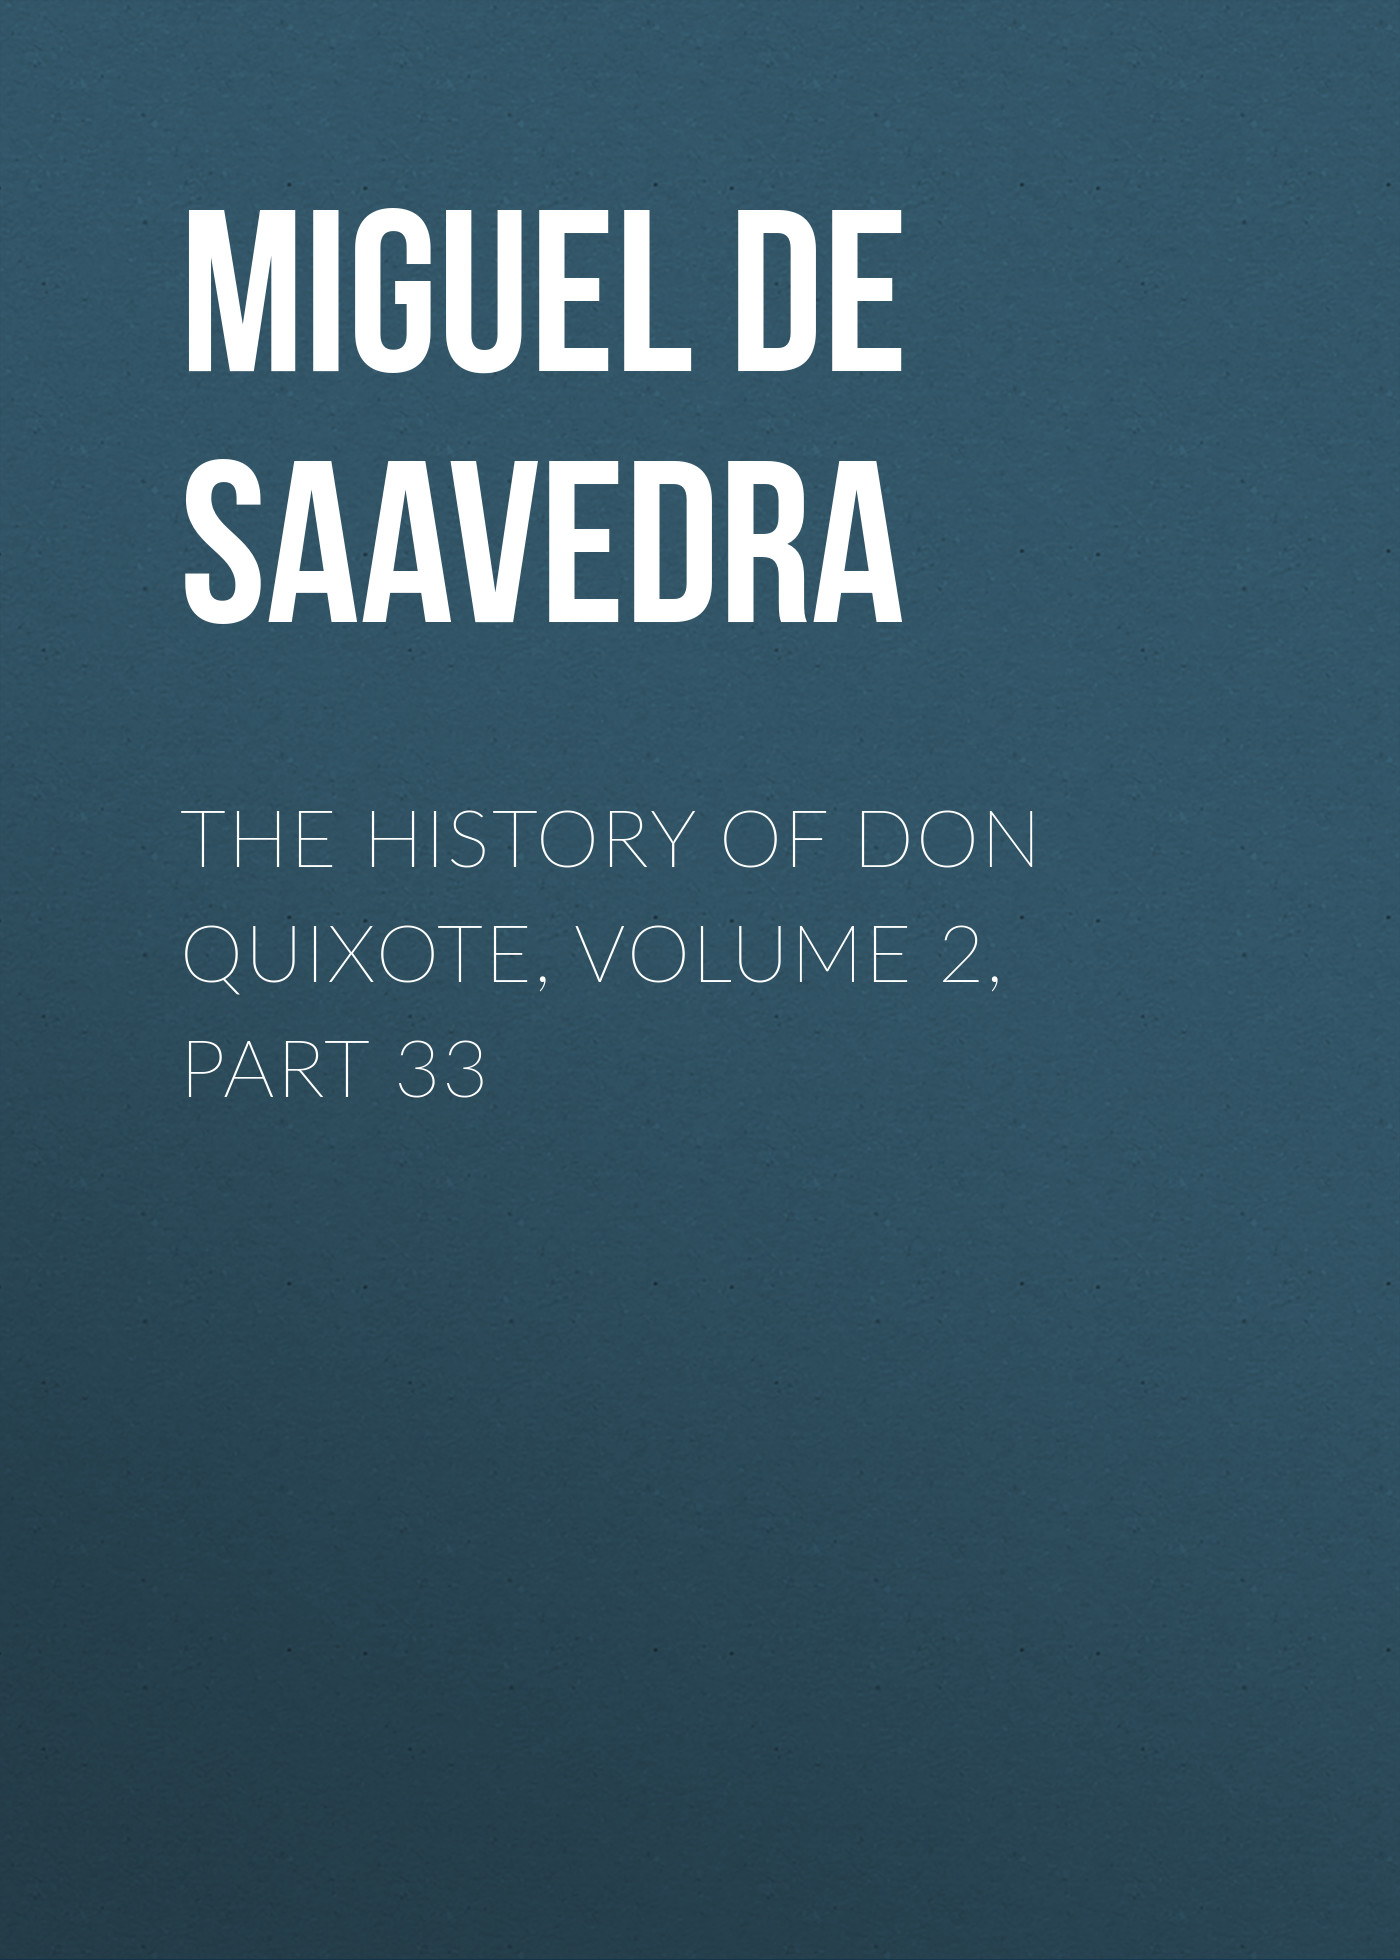 Мигель де Сервантес Сааведра The History of Don Quixote, Volume 2, Part 33 rasmus björn anderson the heimskringla a history of the norse kings volume 5 part 2